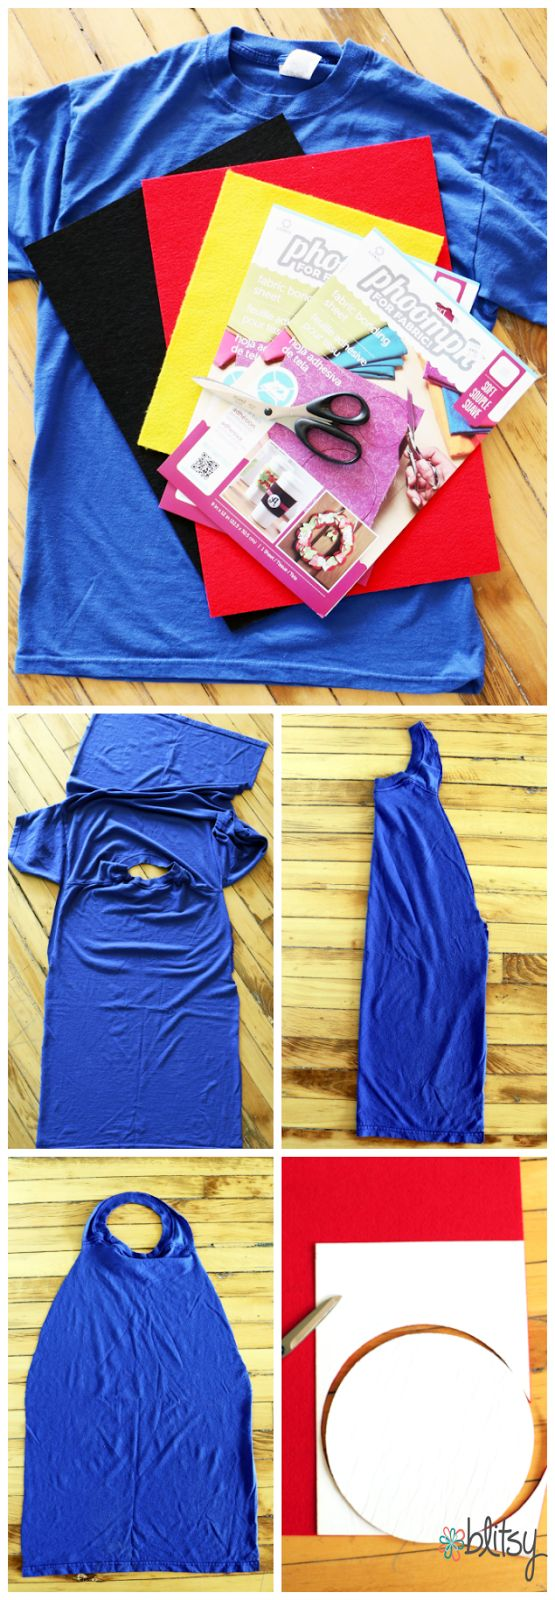 DIY no-sew Super Hero Cape made out of an old t-shirt! Phoomph is the magical supply used in this no-sew project. Your pint-sized hero can wear this all year long! #halloween #blitsy #blitsyblog